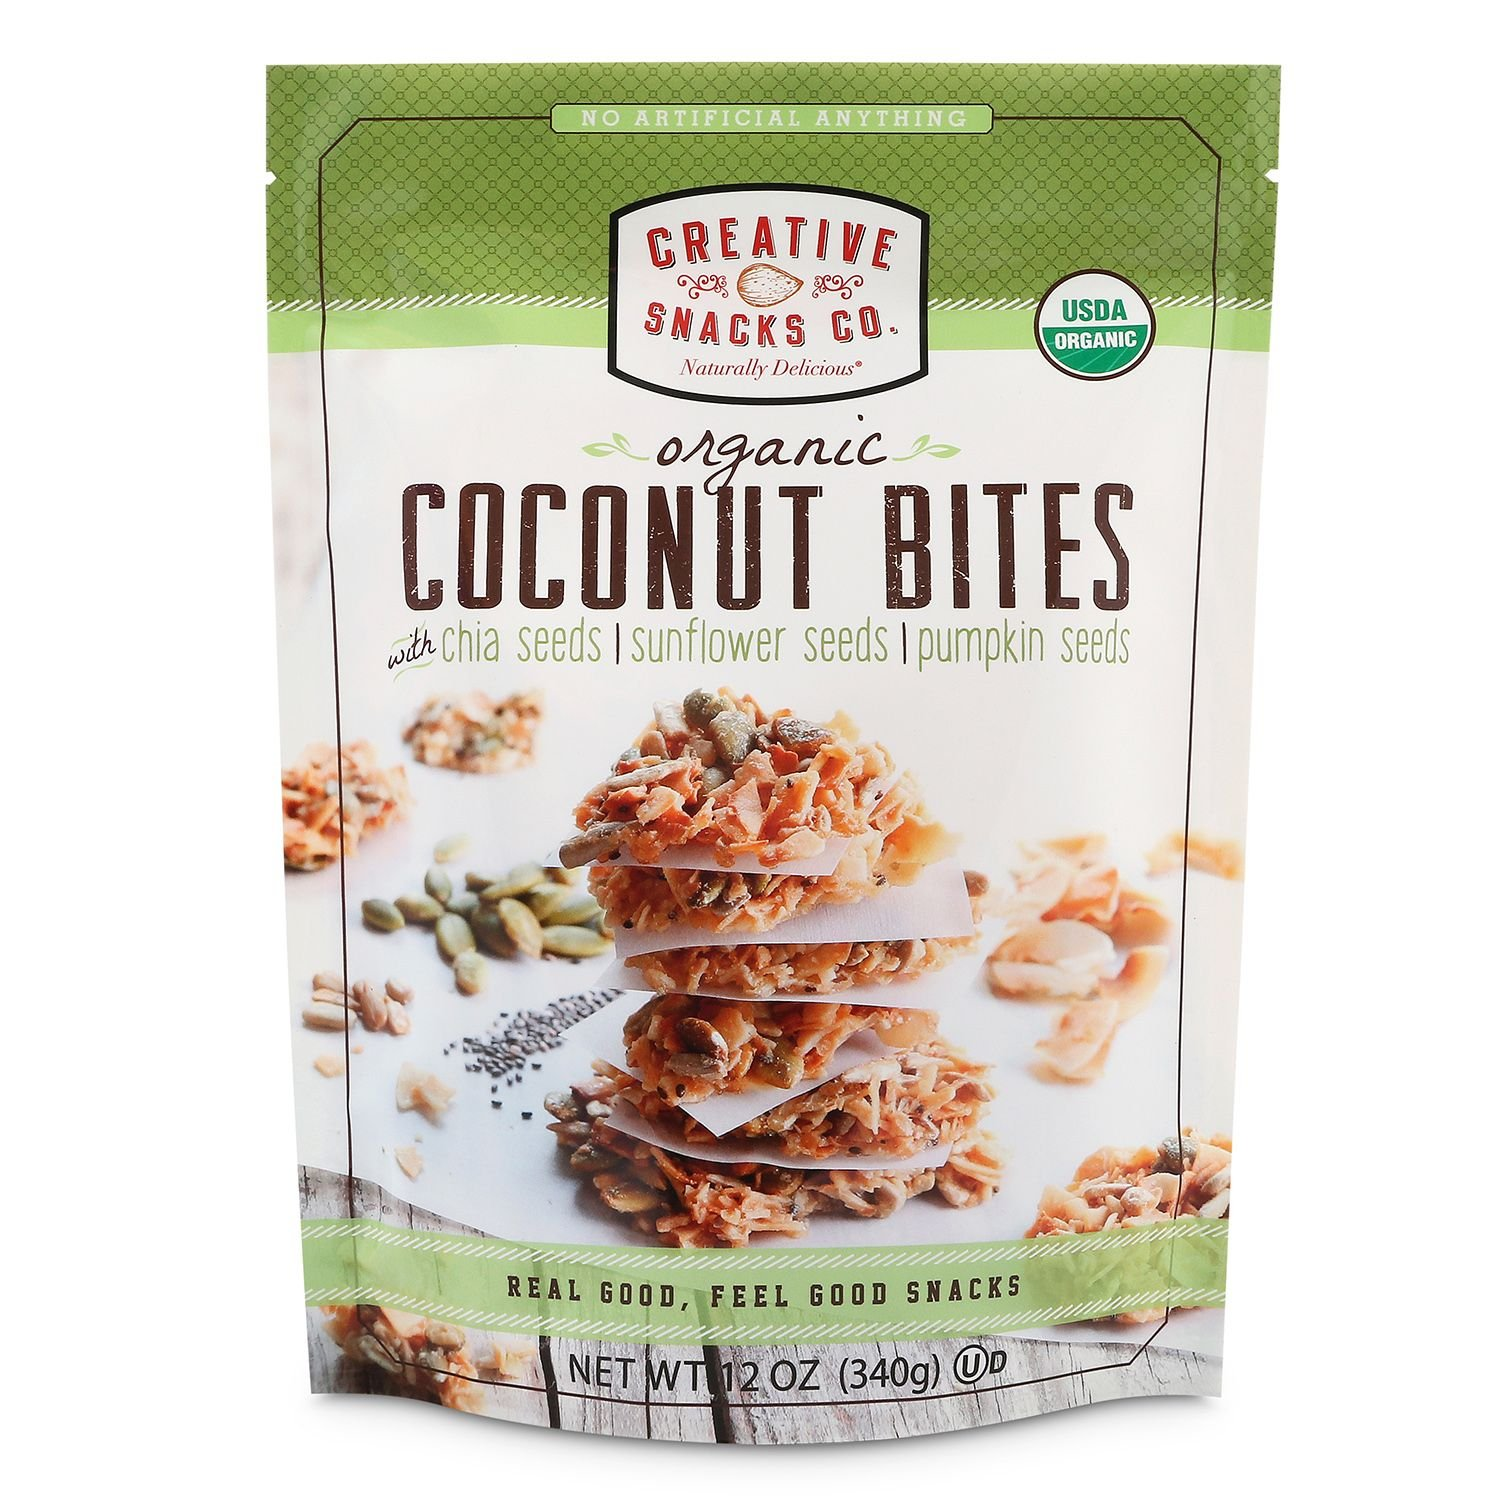 Creative Snacks Organic Coconut Bites (12 oz.) (pack of 6) by Creative Snacks (Image #1)